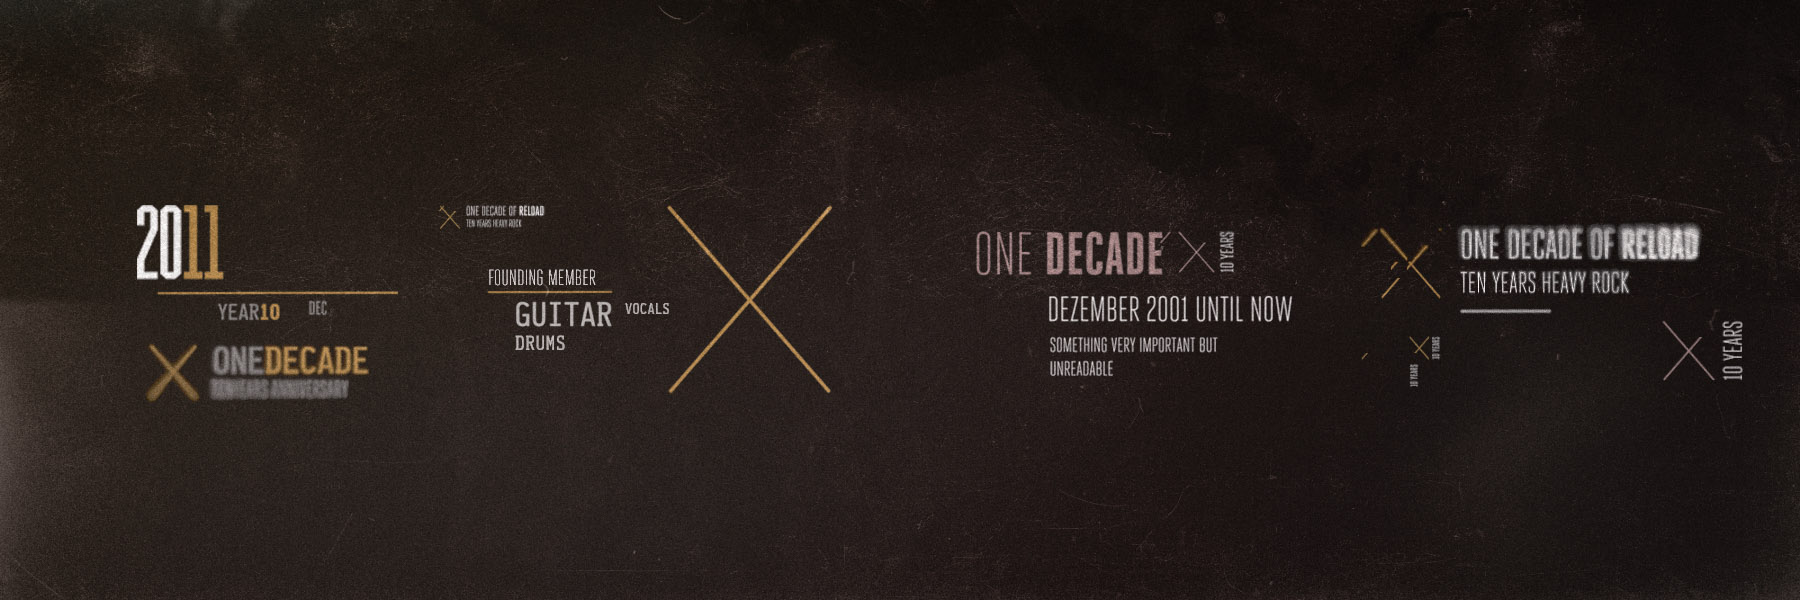 oneDecade_graphics_edit-01